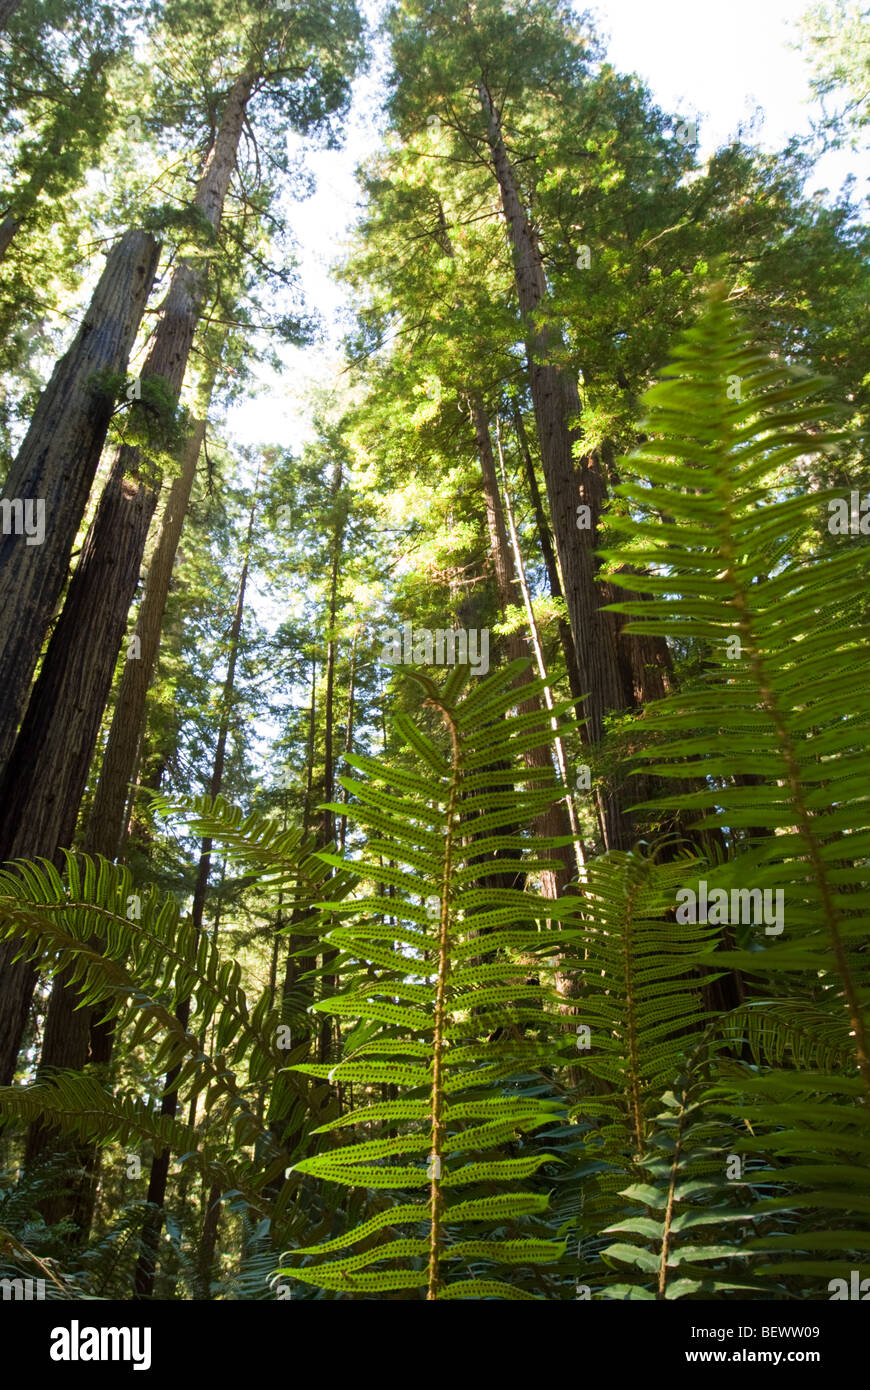 A view of redwoods and ferns in Prairie Creek Redwoods State Park, California. - Stock Image